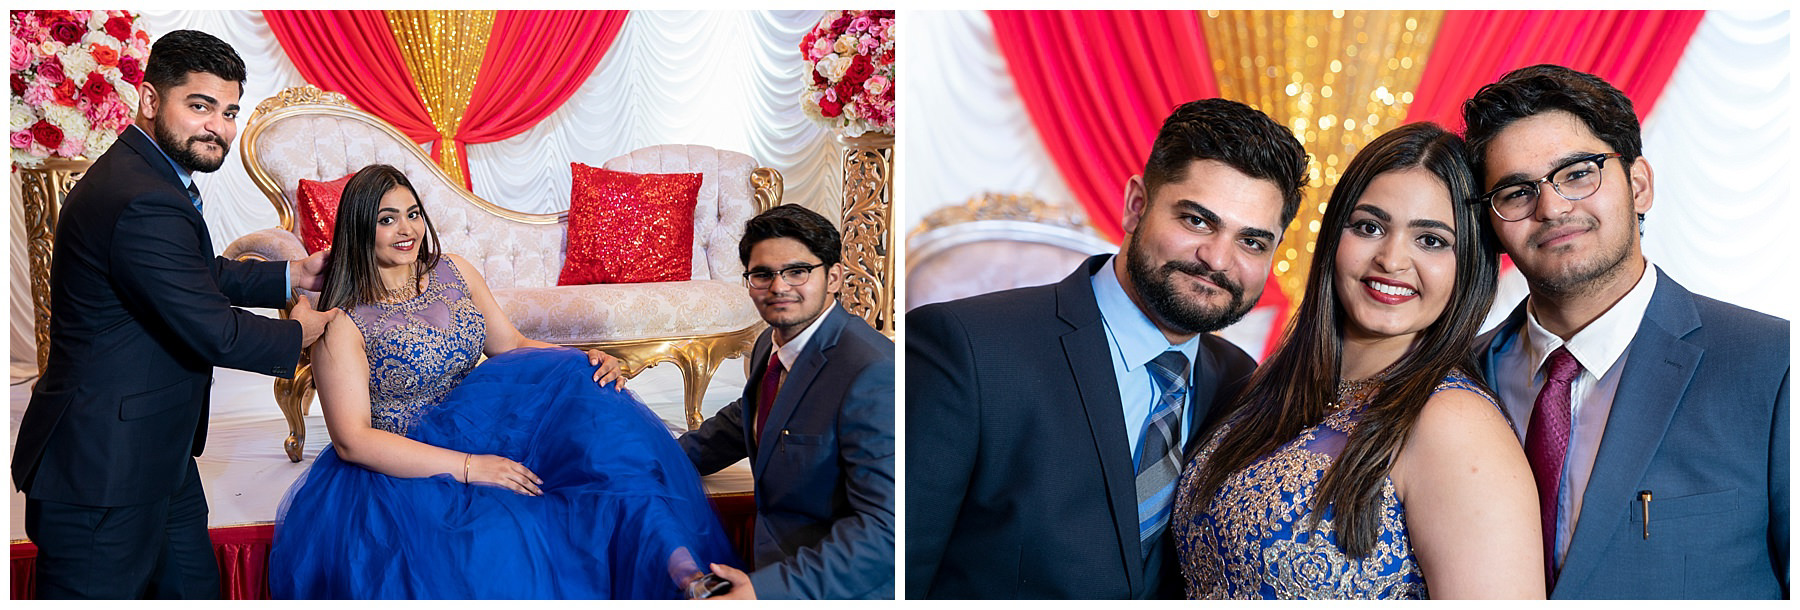 royal-alberts-palace-fords-nj-engagement-vidushi-ankush-11.jpg